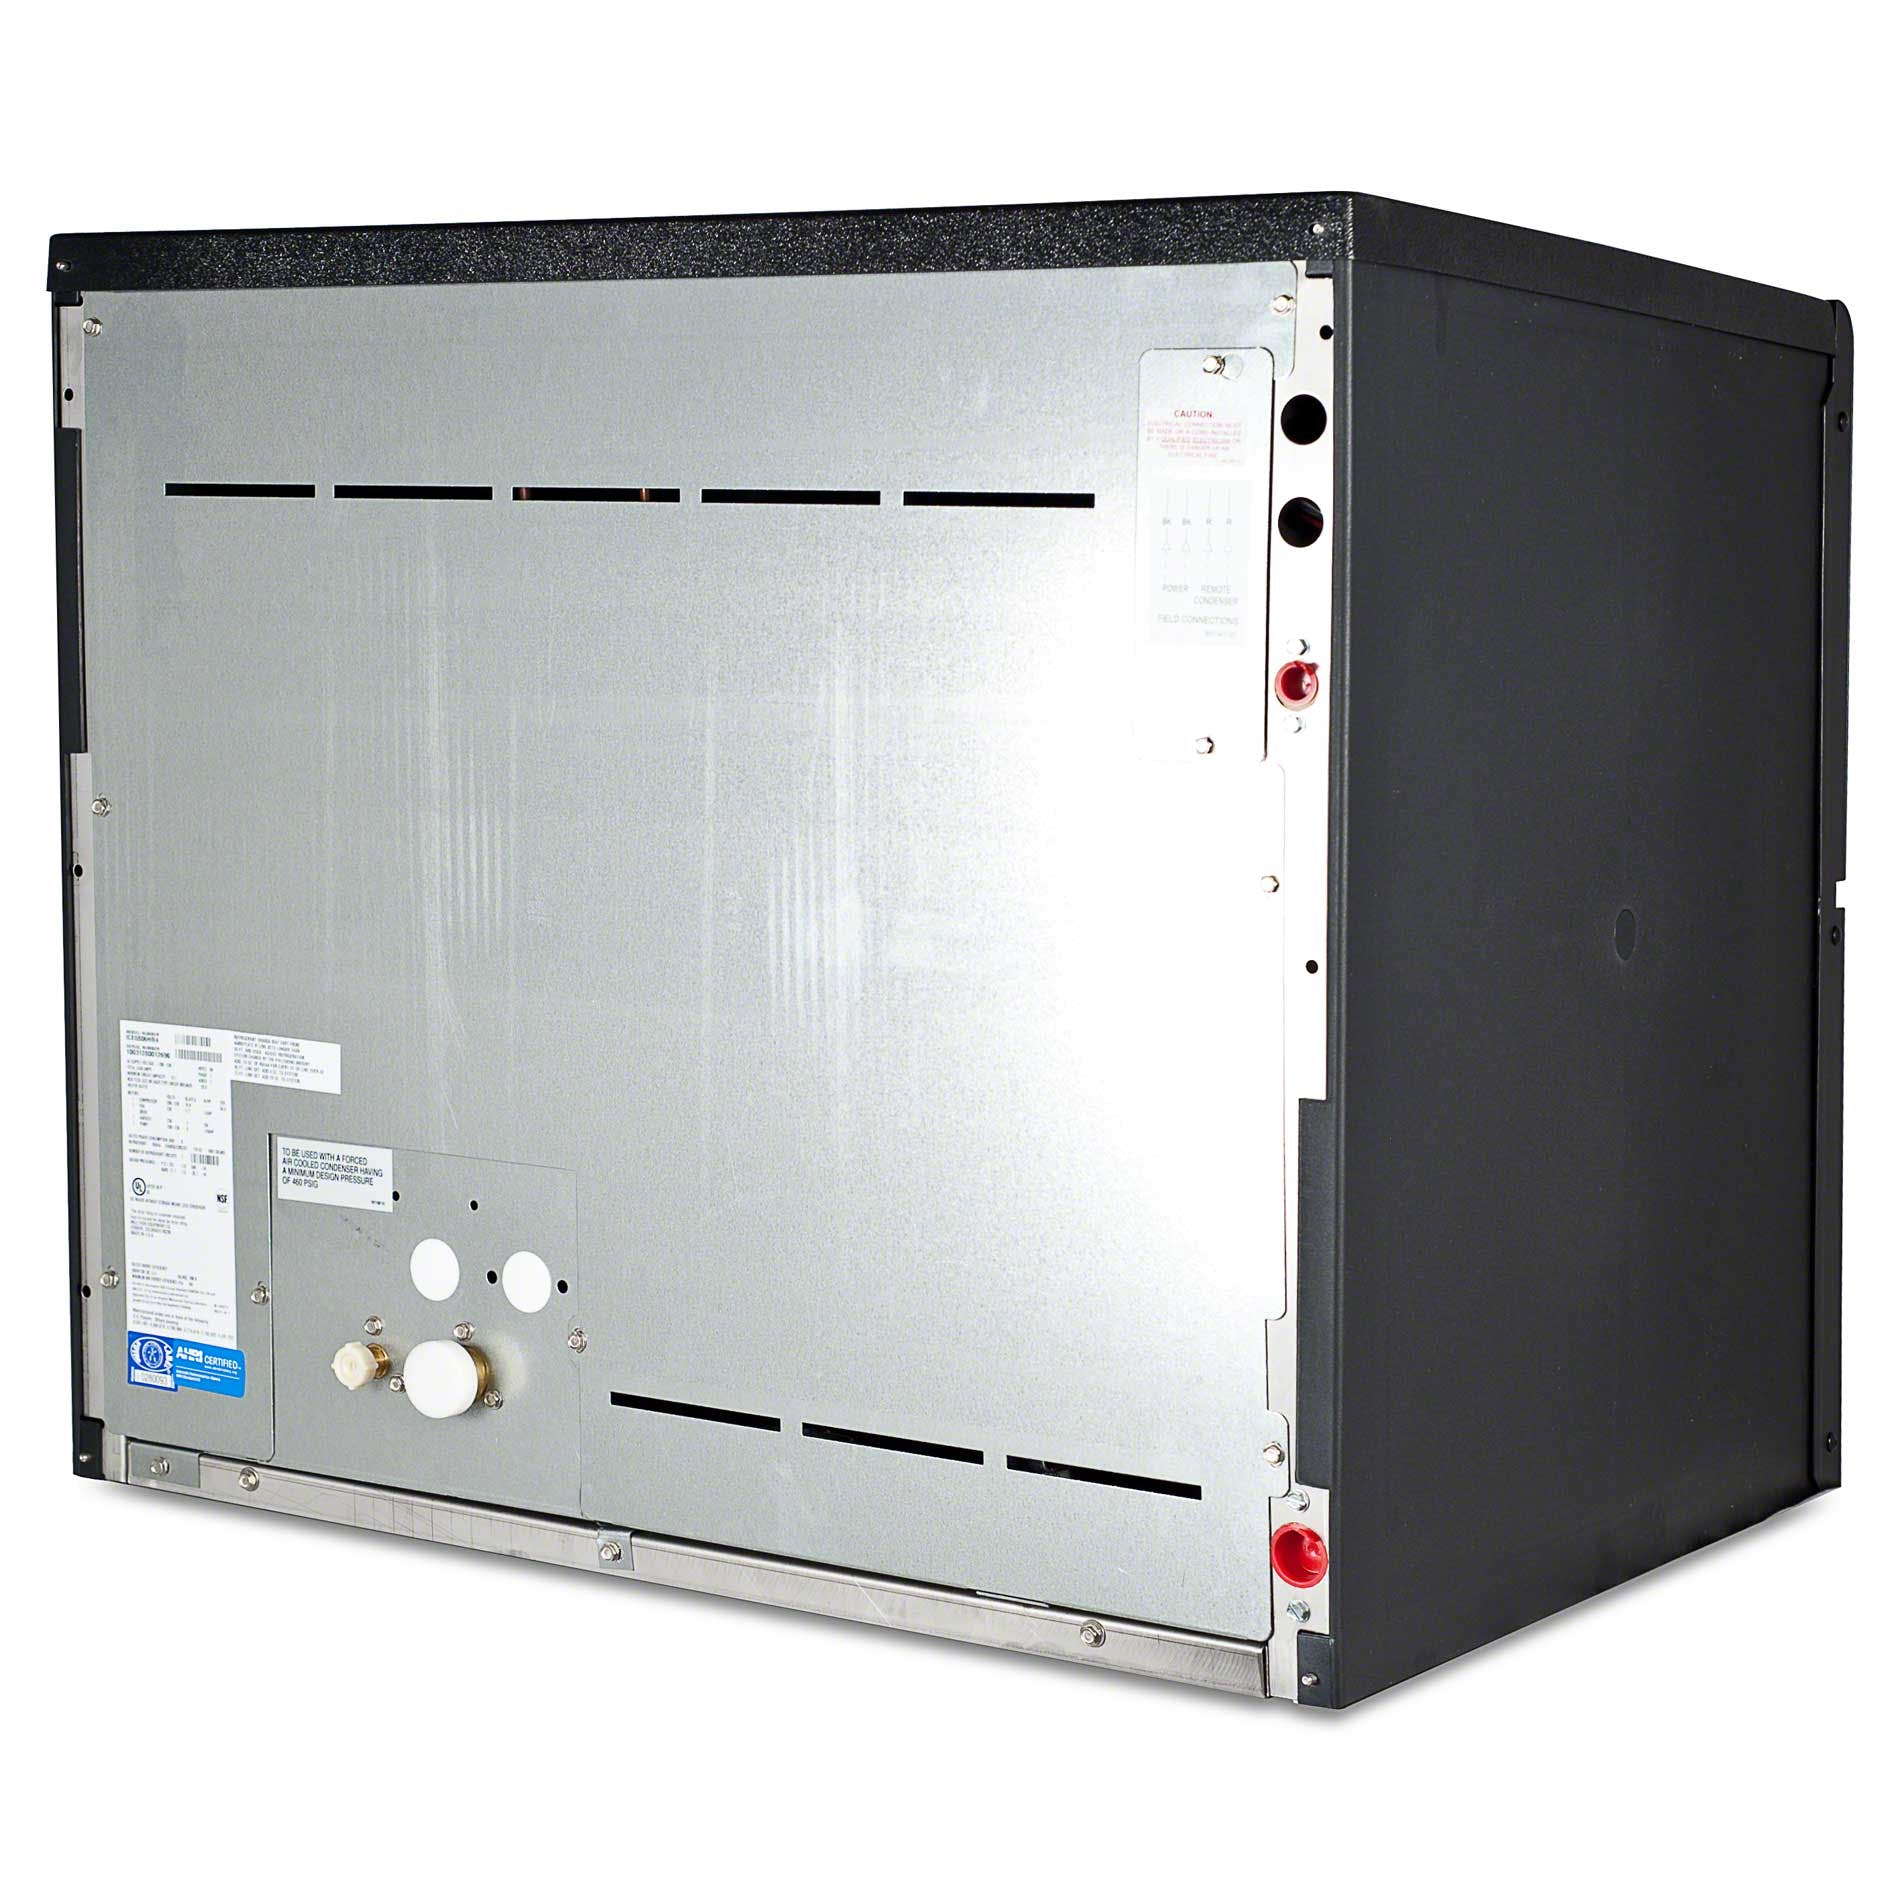 Ice-O-Matic - ICE1006HR 982 lb Half Cube Ice Machine Ice machine sold by Food Service Warehouse